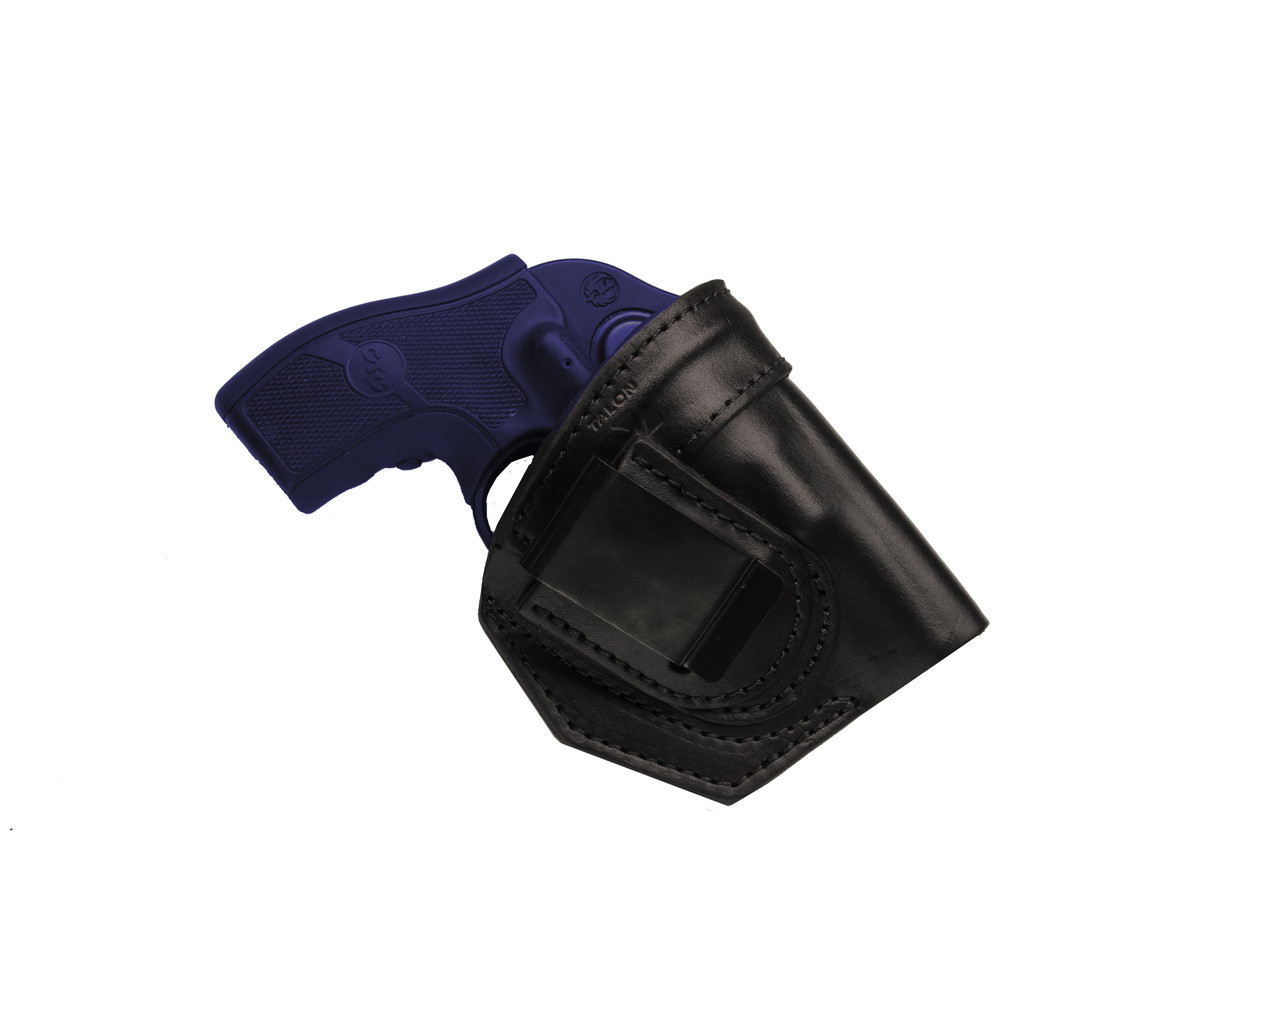 Talon Tuckable Ruger LCR-S&W Defender Revolver IWB Holster With Clip ...